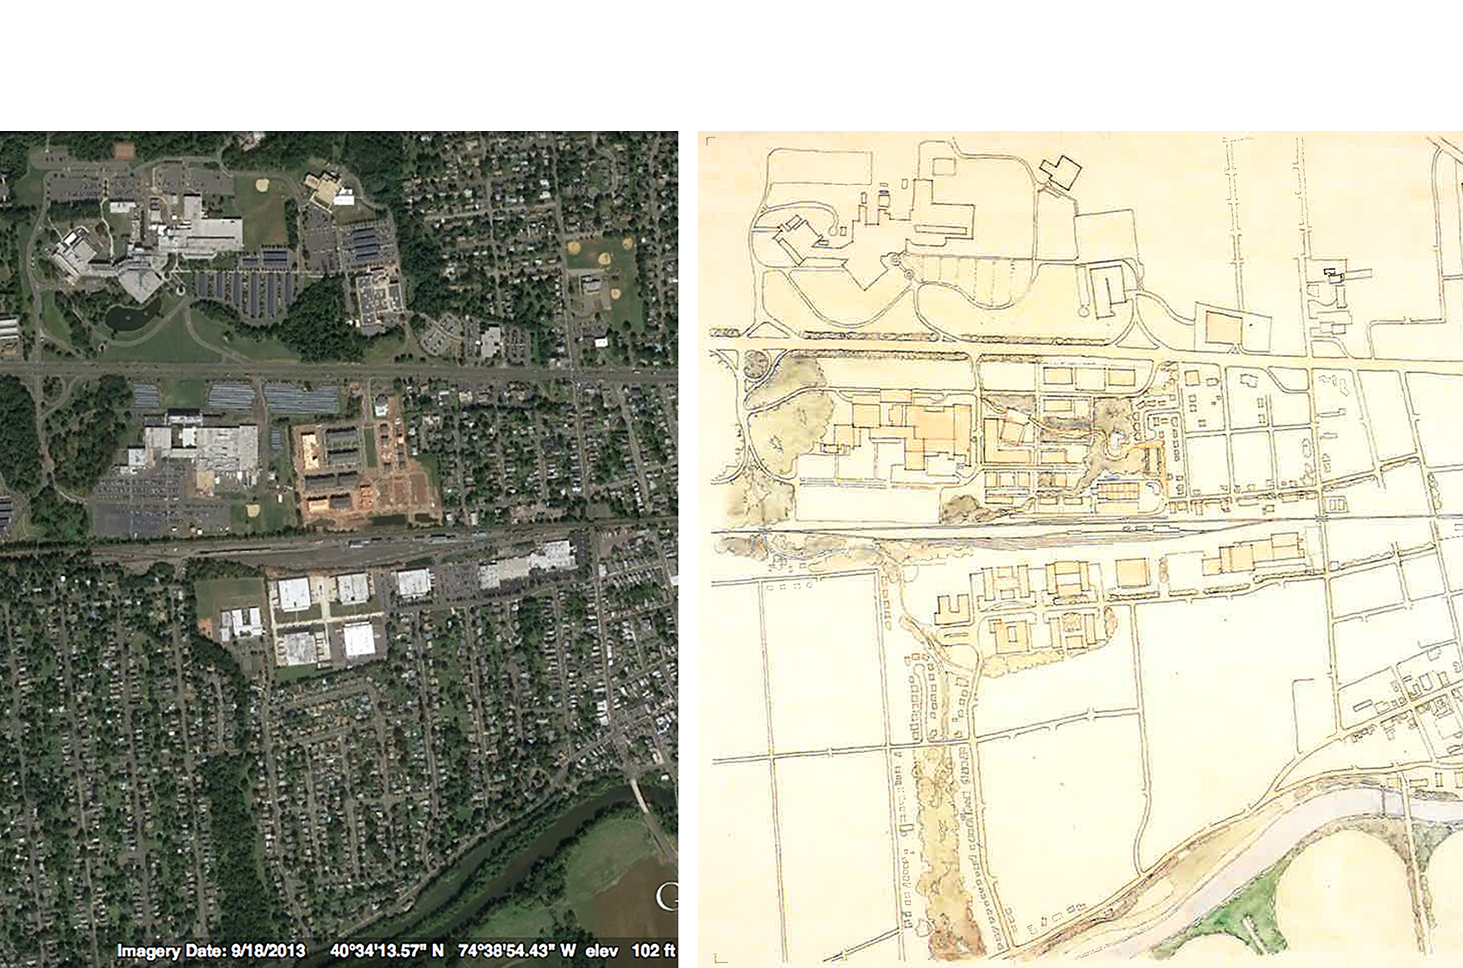 Transforming_Raritan plan_aerial pair_web copy